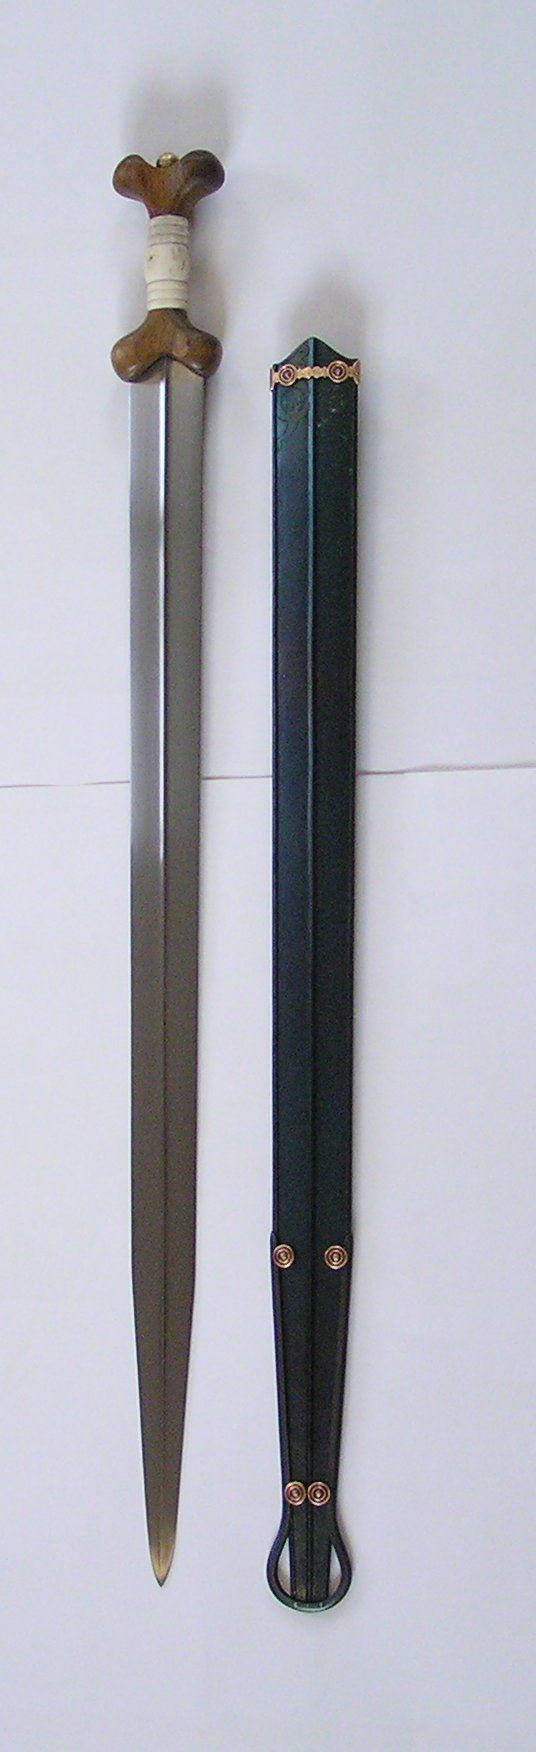 Replica by Patrick Barta Name:    Celtic sword Epoch:   3rd century BC Discover (museum):    Holubice, Czechia Length:   893 mm Weight:   840 g